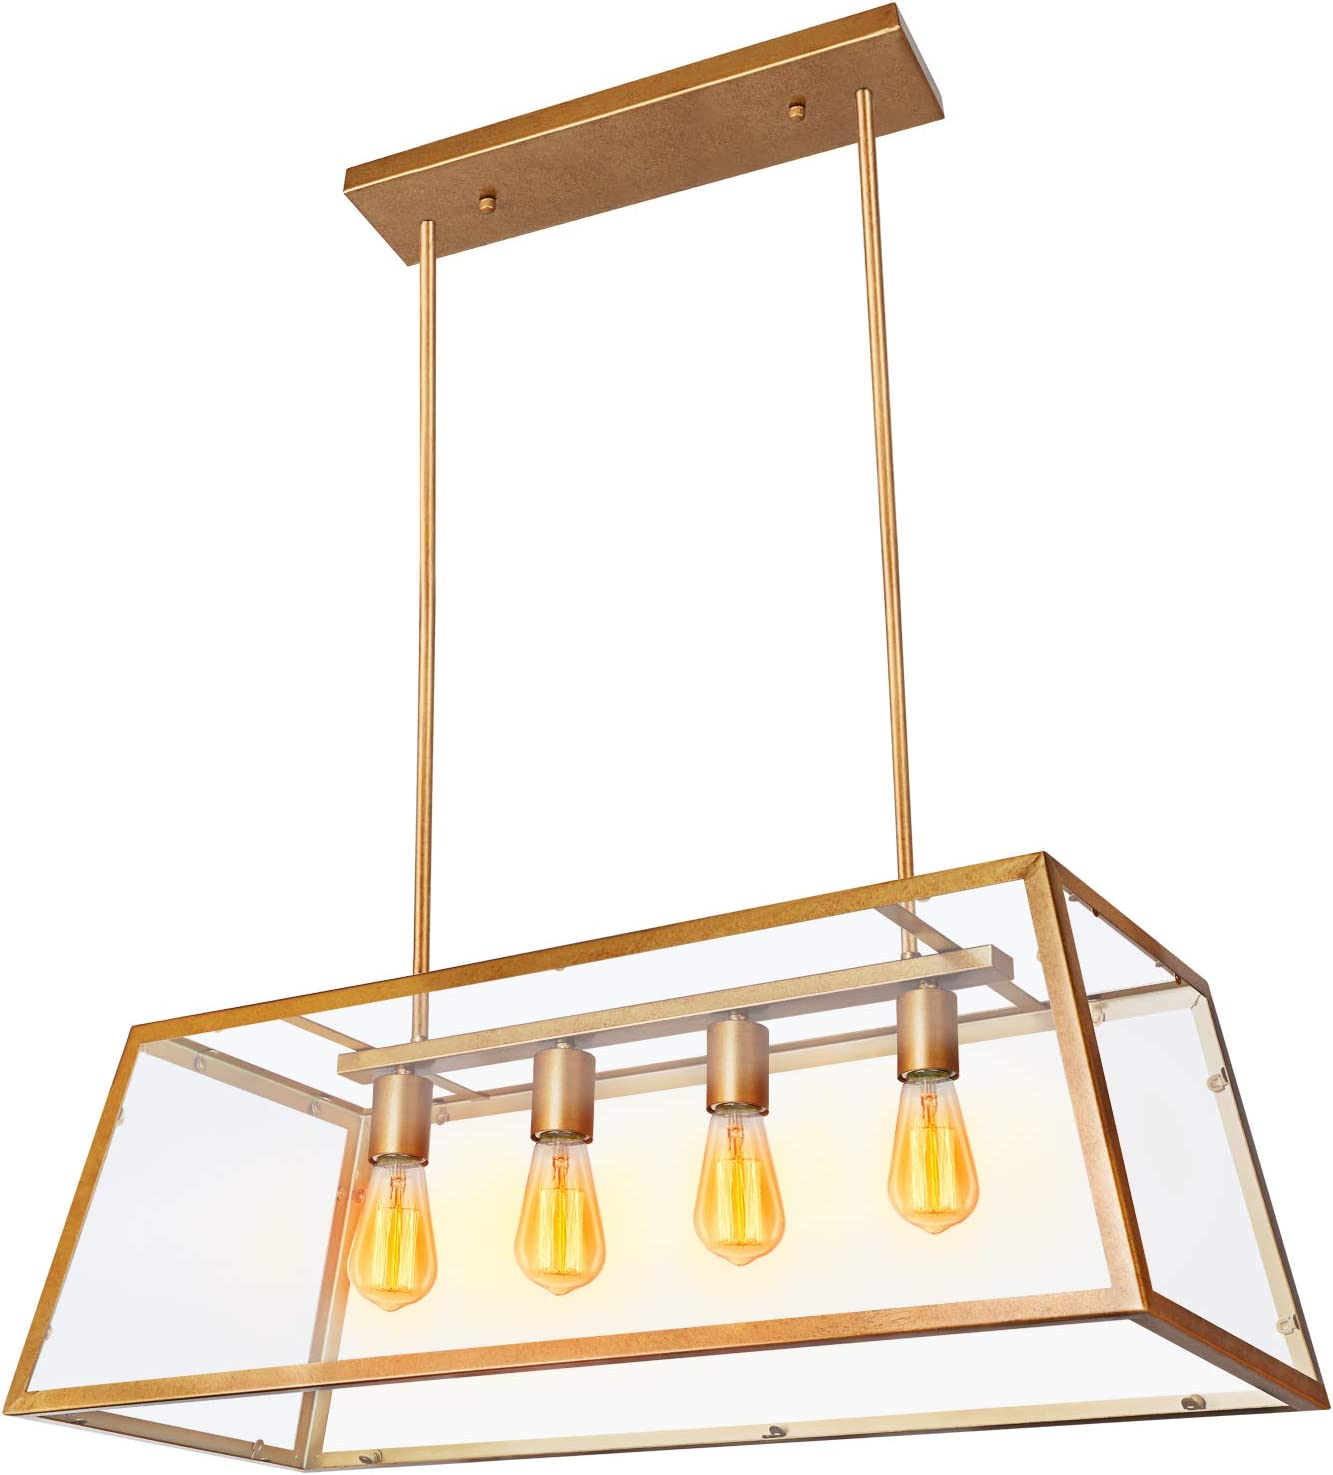 Paragon Home 4-Light Kitchen Island Pendant Lighting, Antique Brass Shade with Clear Glass Panels, Dining Room Lighting Fixtures, Modern Industrial Chandelier, E26 Base Bulbs Not Included